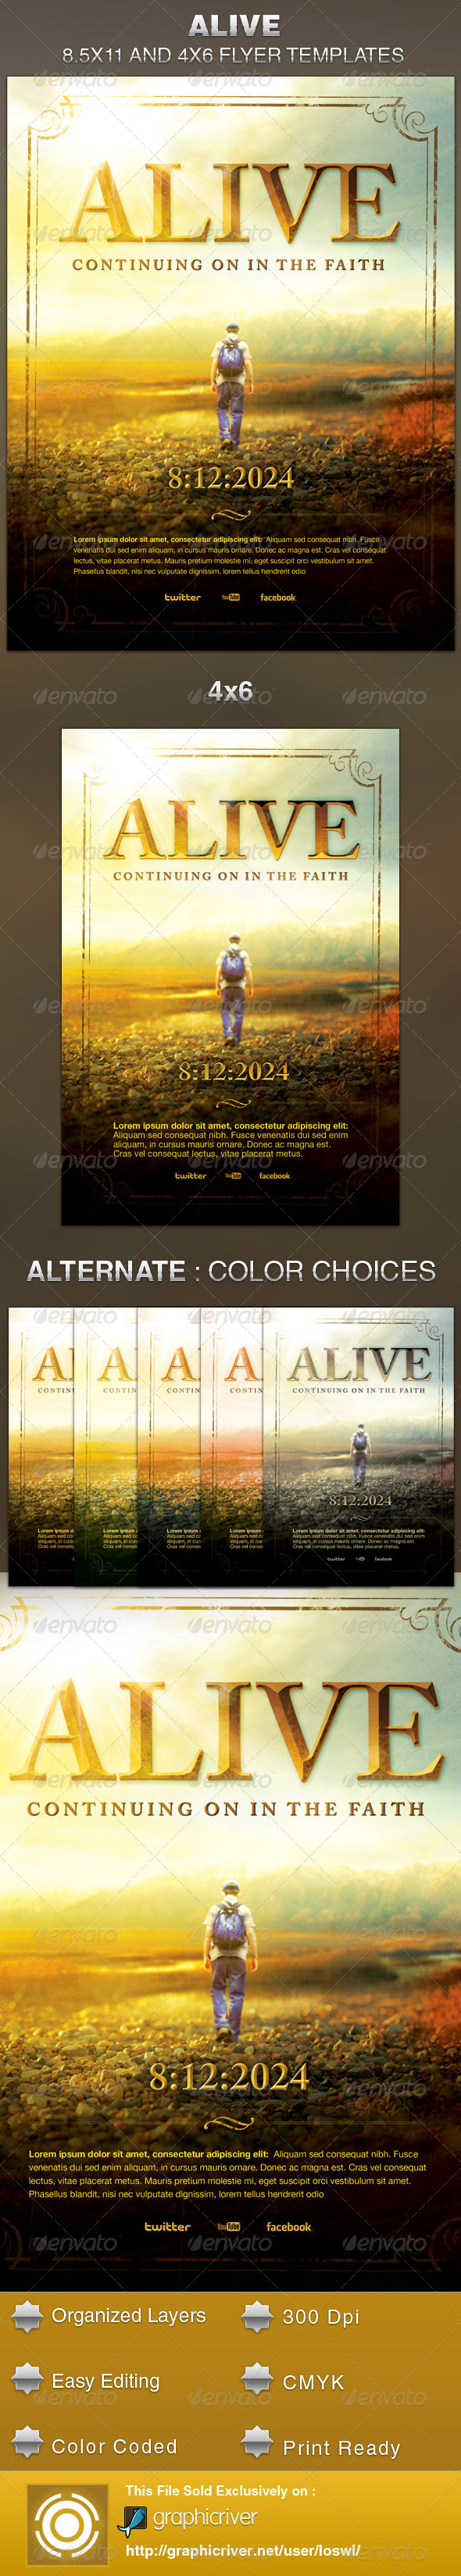 Alive Church Flyer Template - Church Flyers